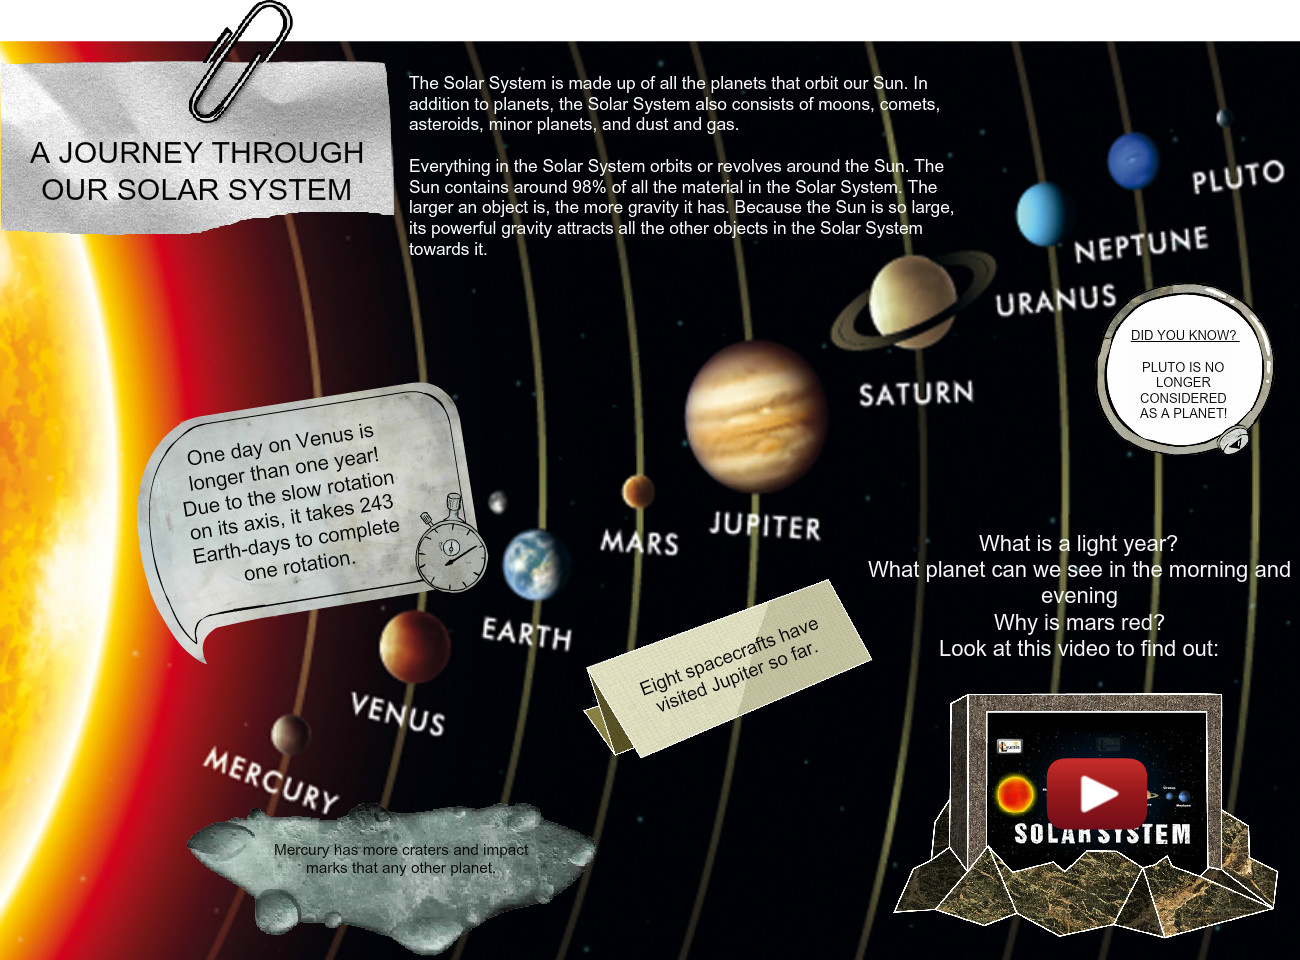 A Journey Through Our Solar System